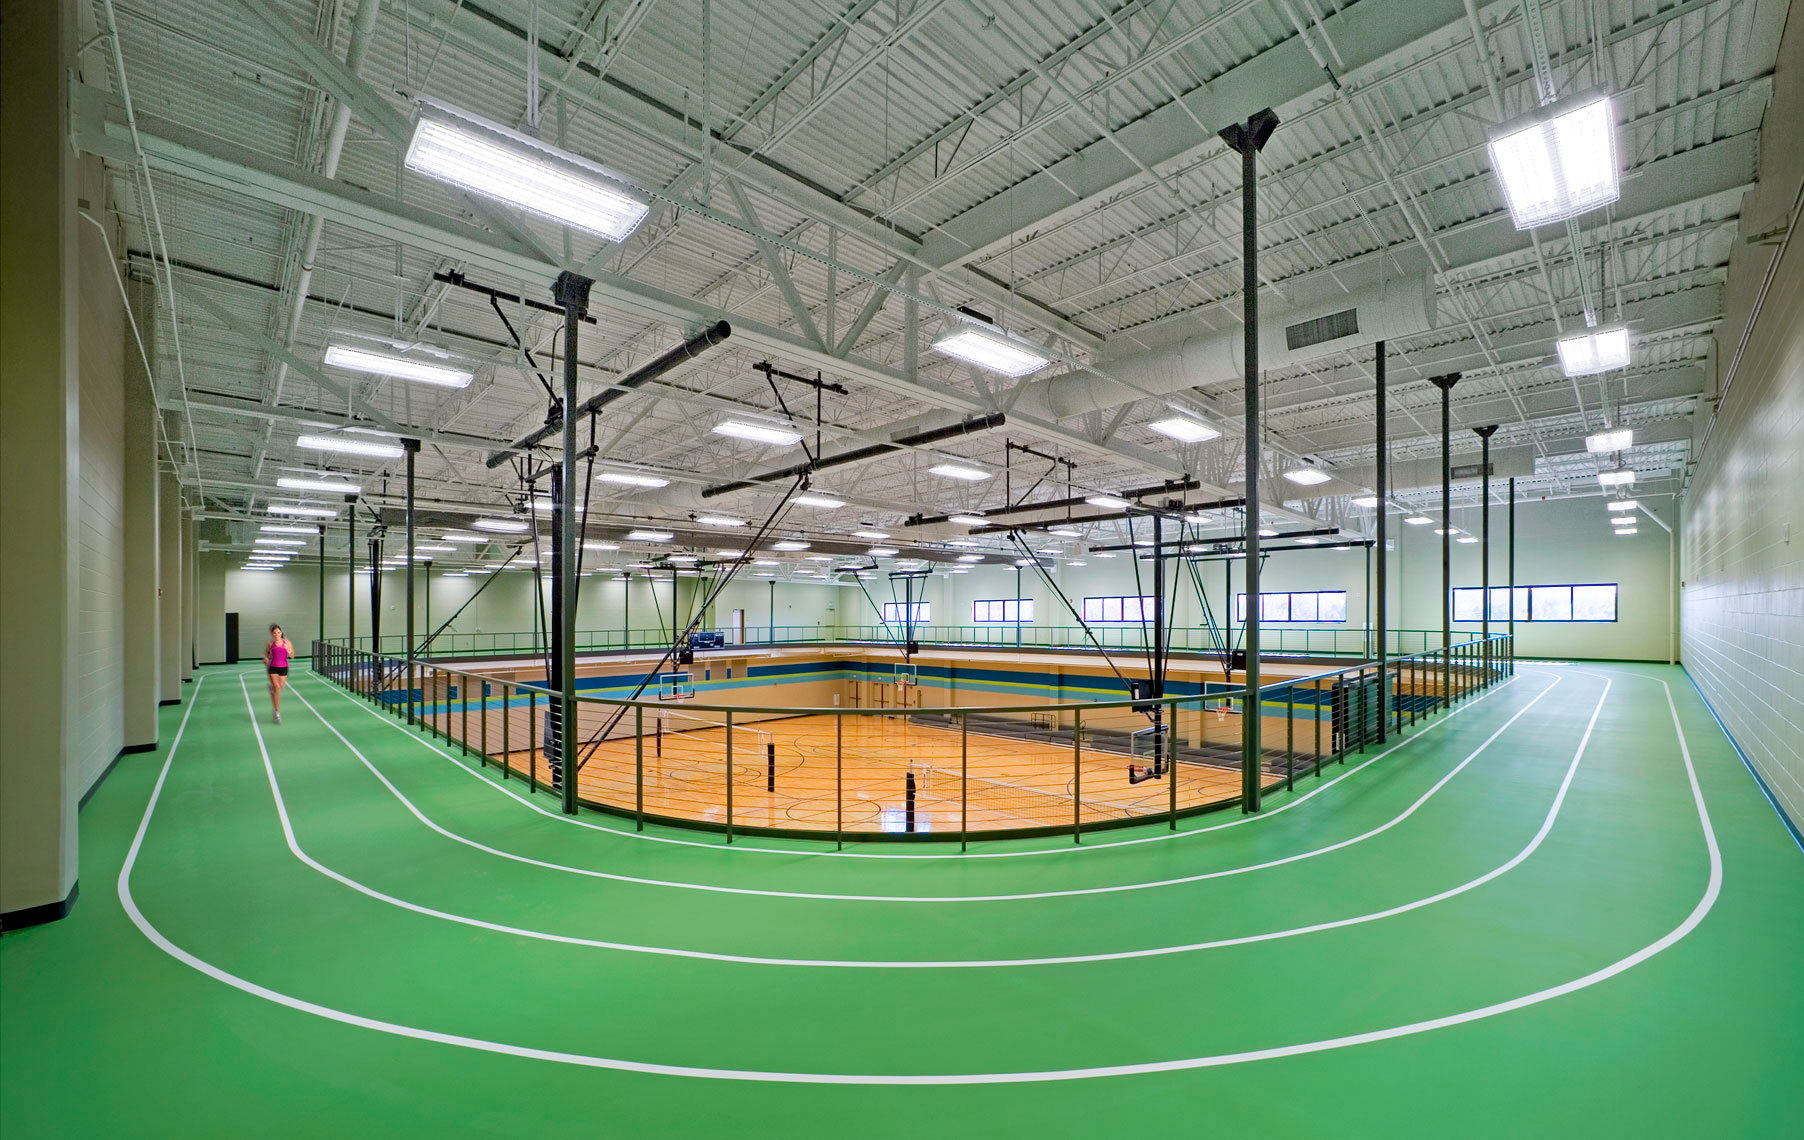 Elevated indoor track and gymnasium